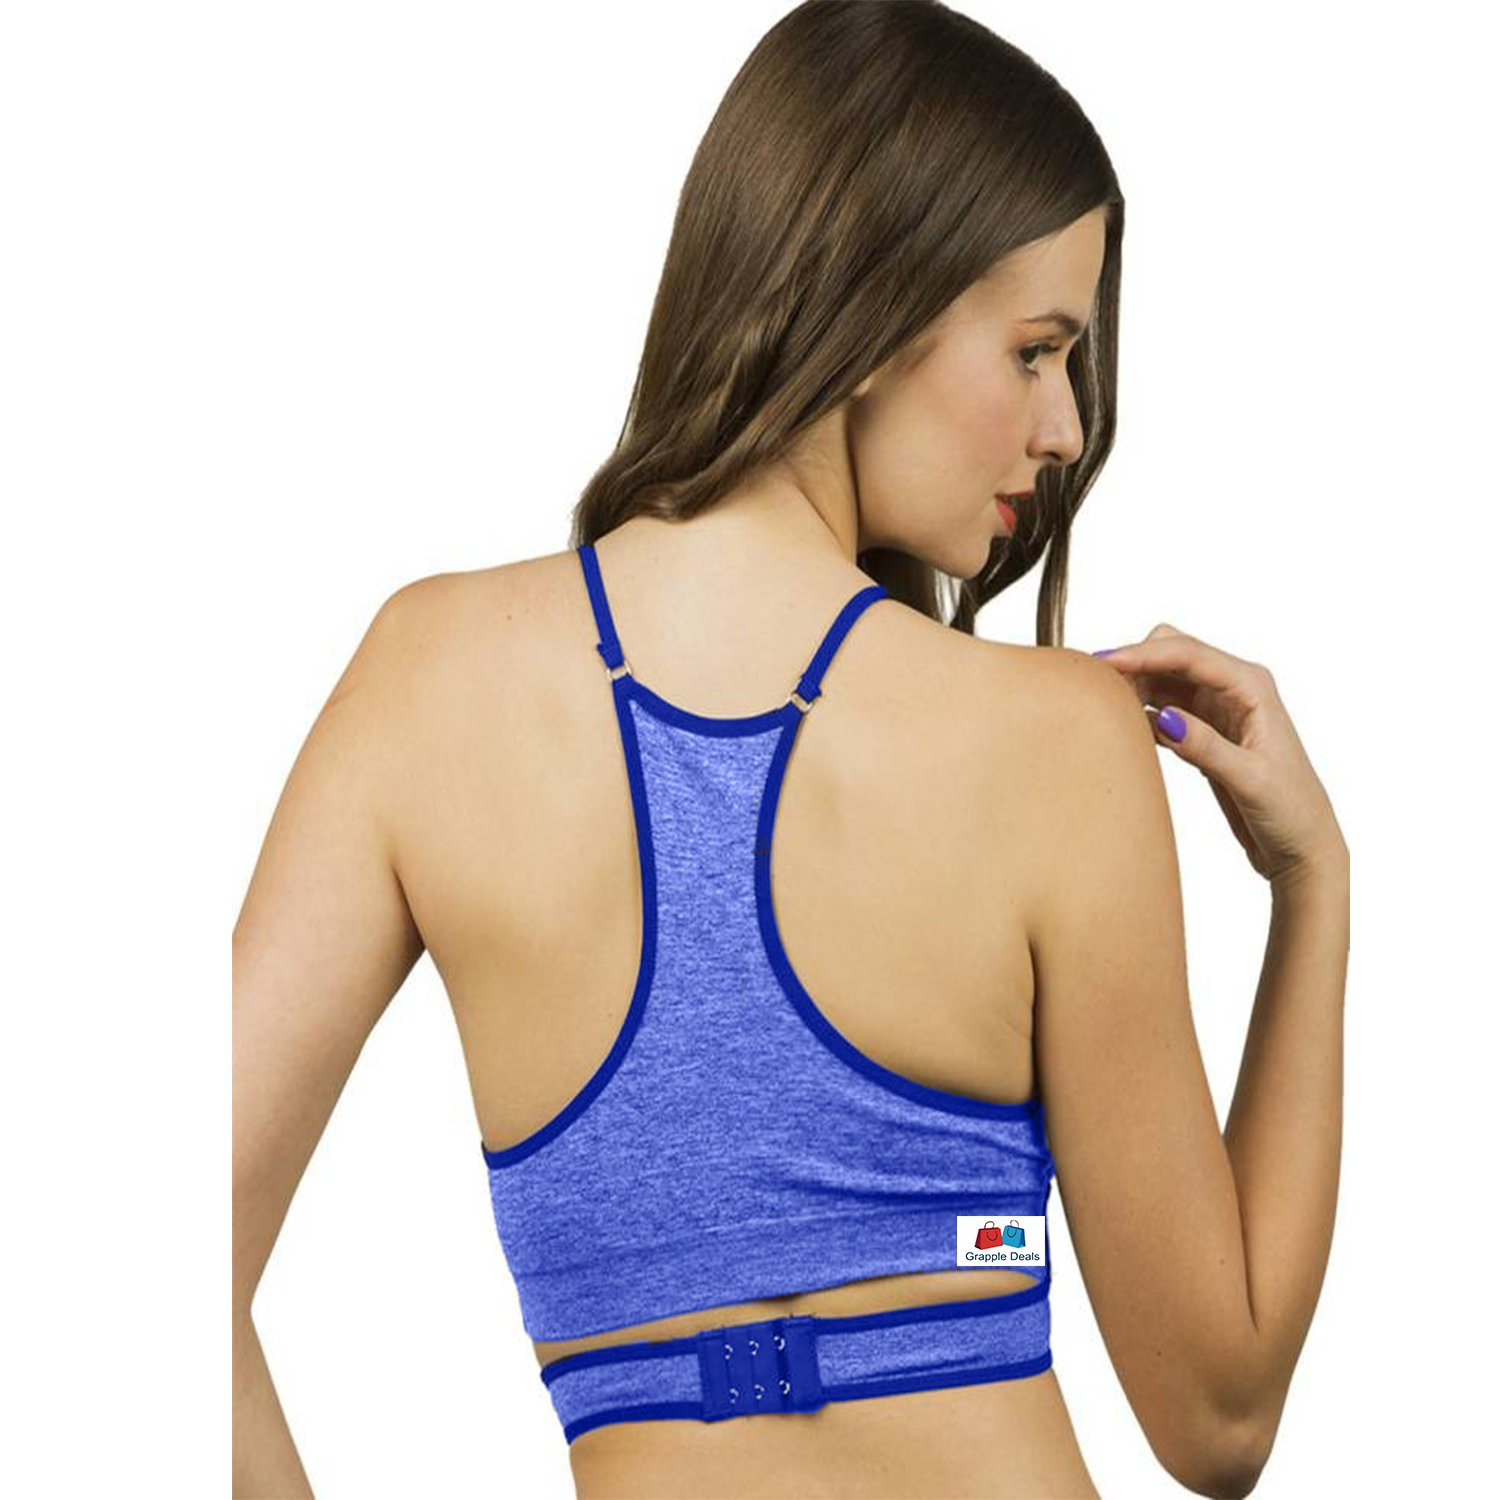 289838b584190 GRAPPLE DEALS Women s New Design Double Cross Strap At Front Comfort  Workout Fitness Sports Bras Yoga Athletic Gym High Impact Underwire Padded  Racerback.